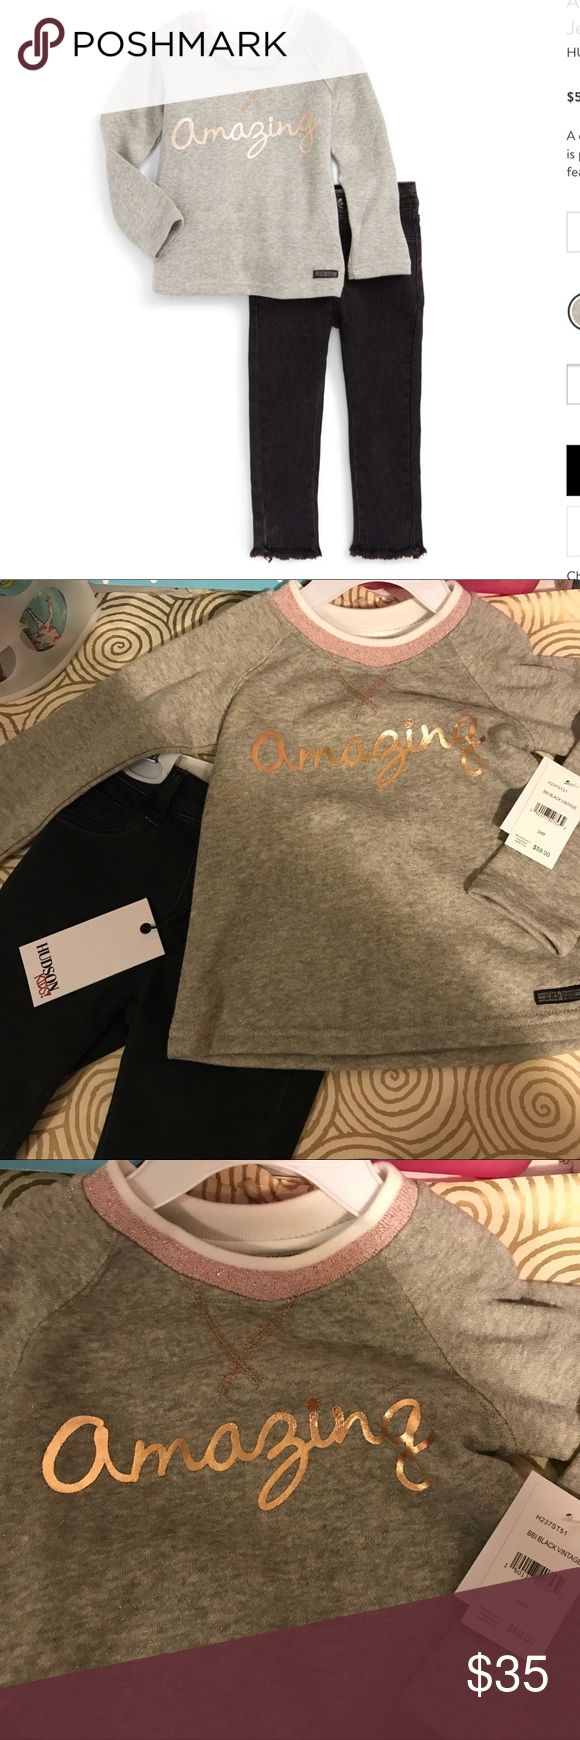 """BNWT 24 Mos Hudson """"Amazing"""" Sweatshirt & Jeans. BNWT 24 Mos Hudson """"Amazing"""" Sweatshirt & Jeans. A cozy French-terry pullover with shimmering details is paired perfectly with stretchy, dark-denim pants featuring frayed hems. First photo courtesy of high end department store, where outfit is still full price! Do a search, then come back and save here! Ask with questions! Designed for girls, but definitely unisex appeal! Hudson Jeans Matching Sets"""